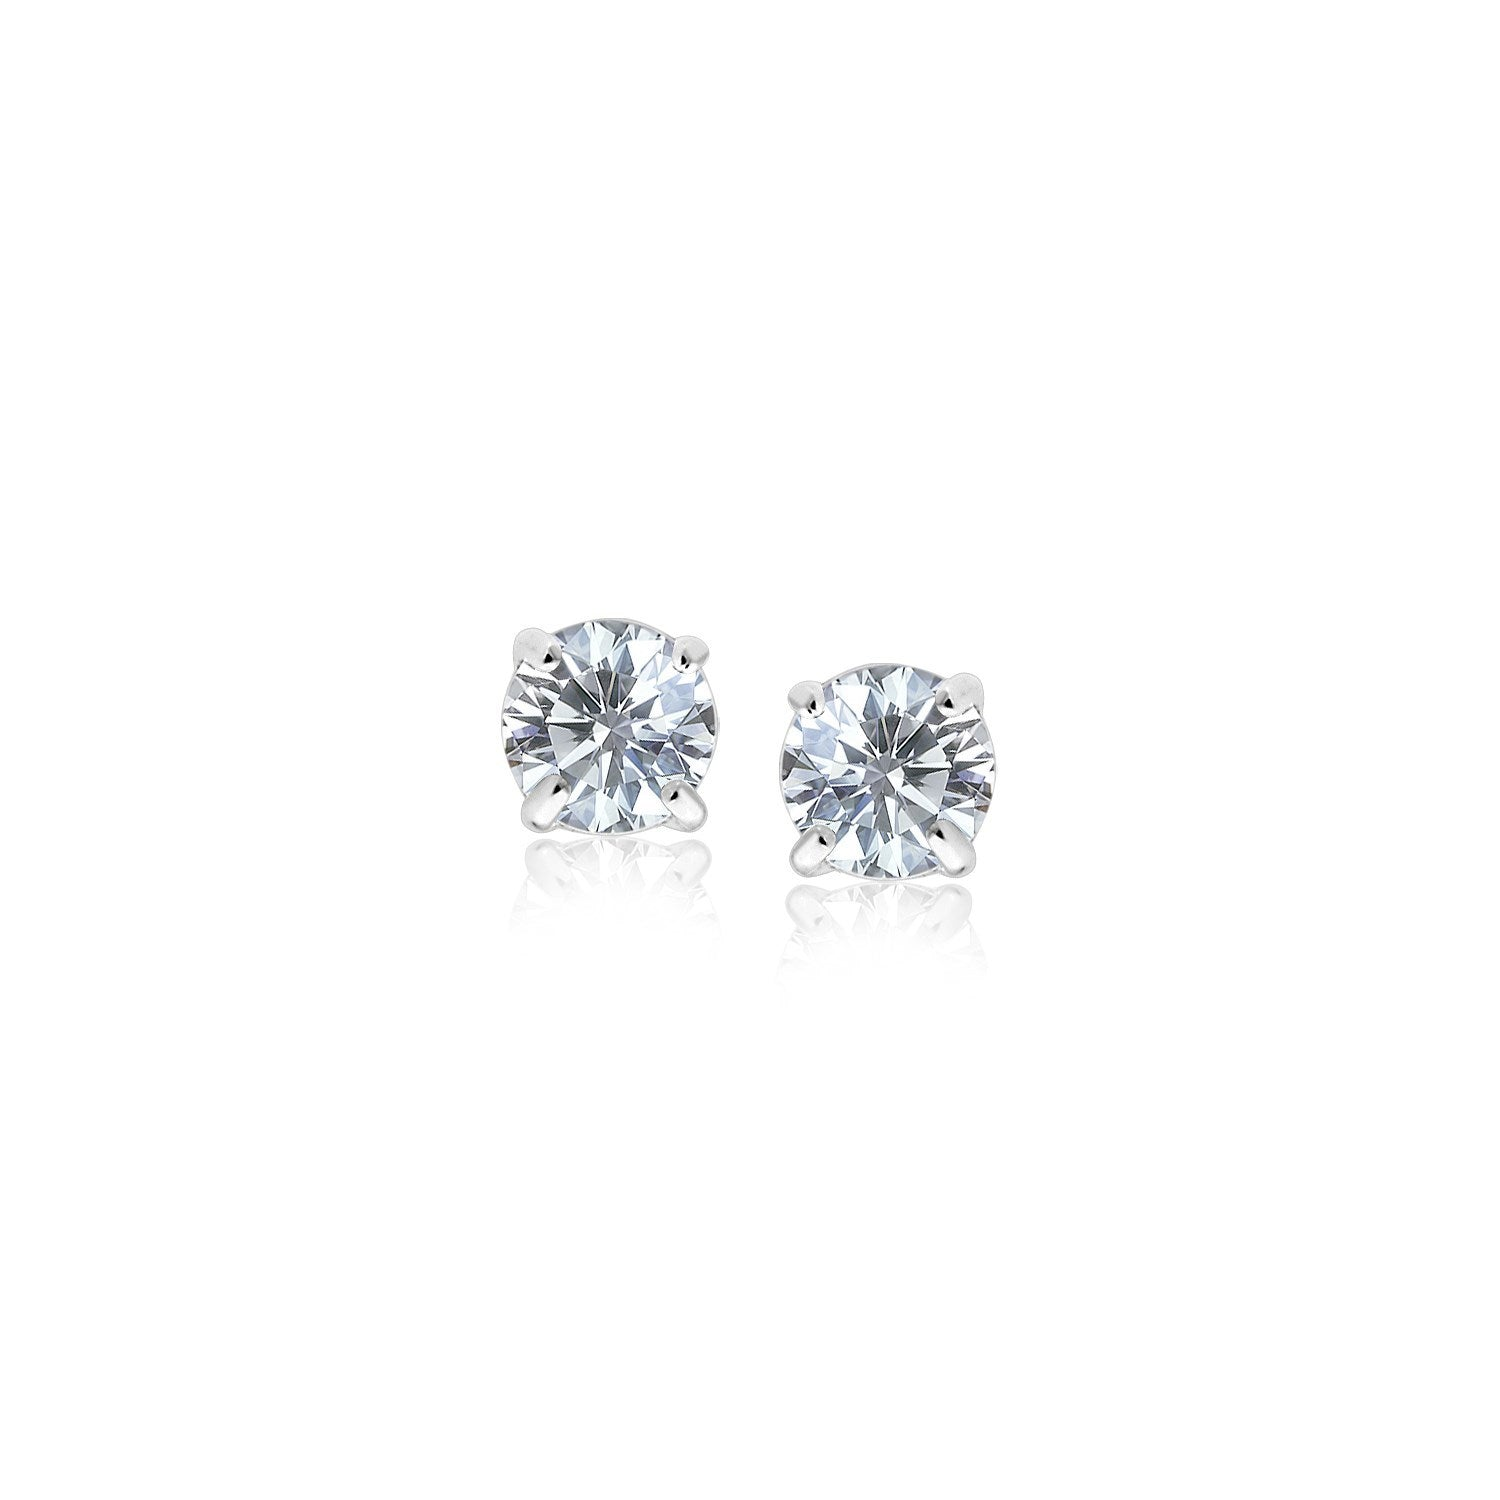 Sterling Silver 3mm Faceted White Cubic Zirconia Stud Earrings